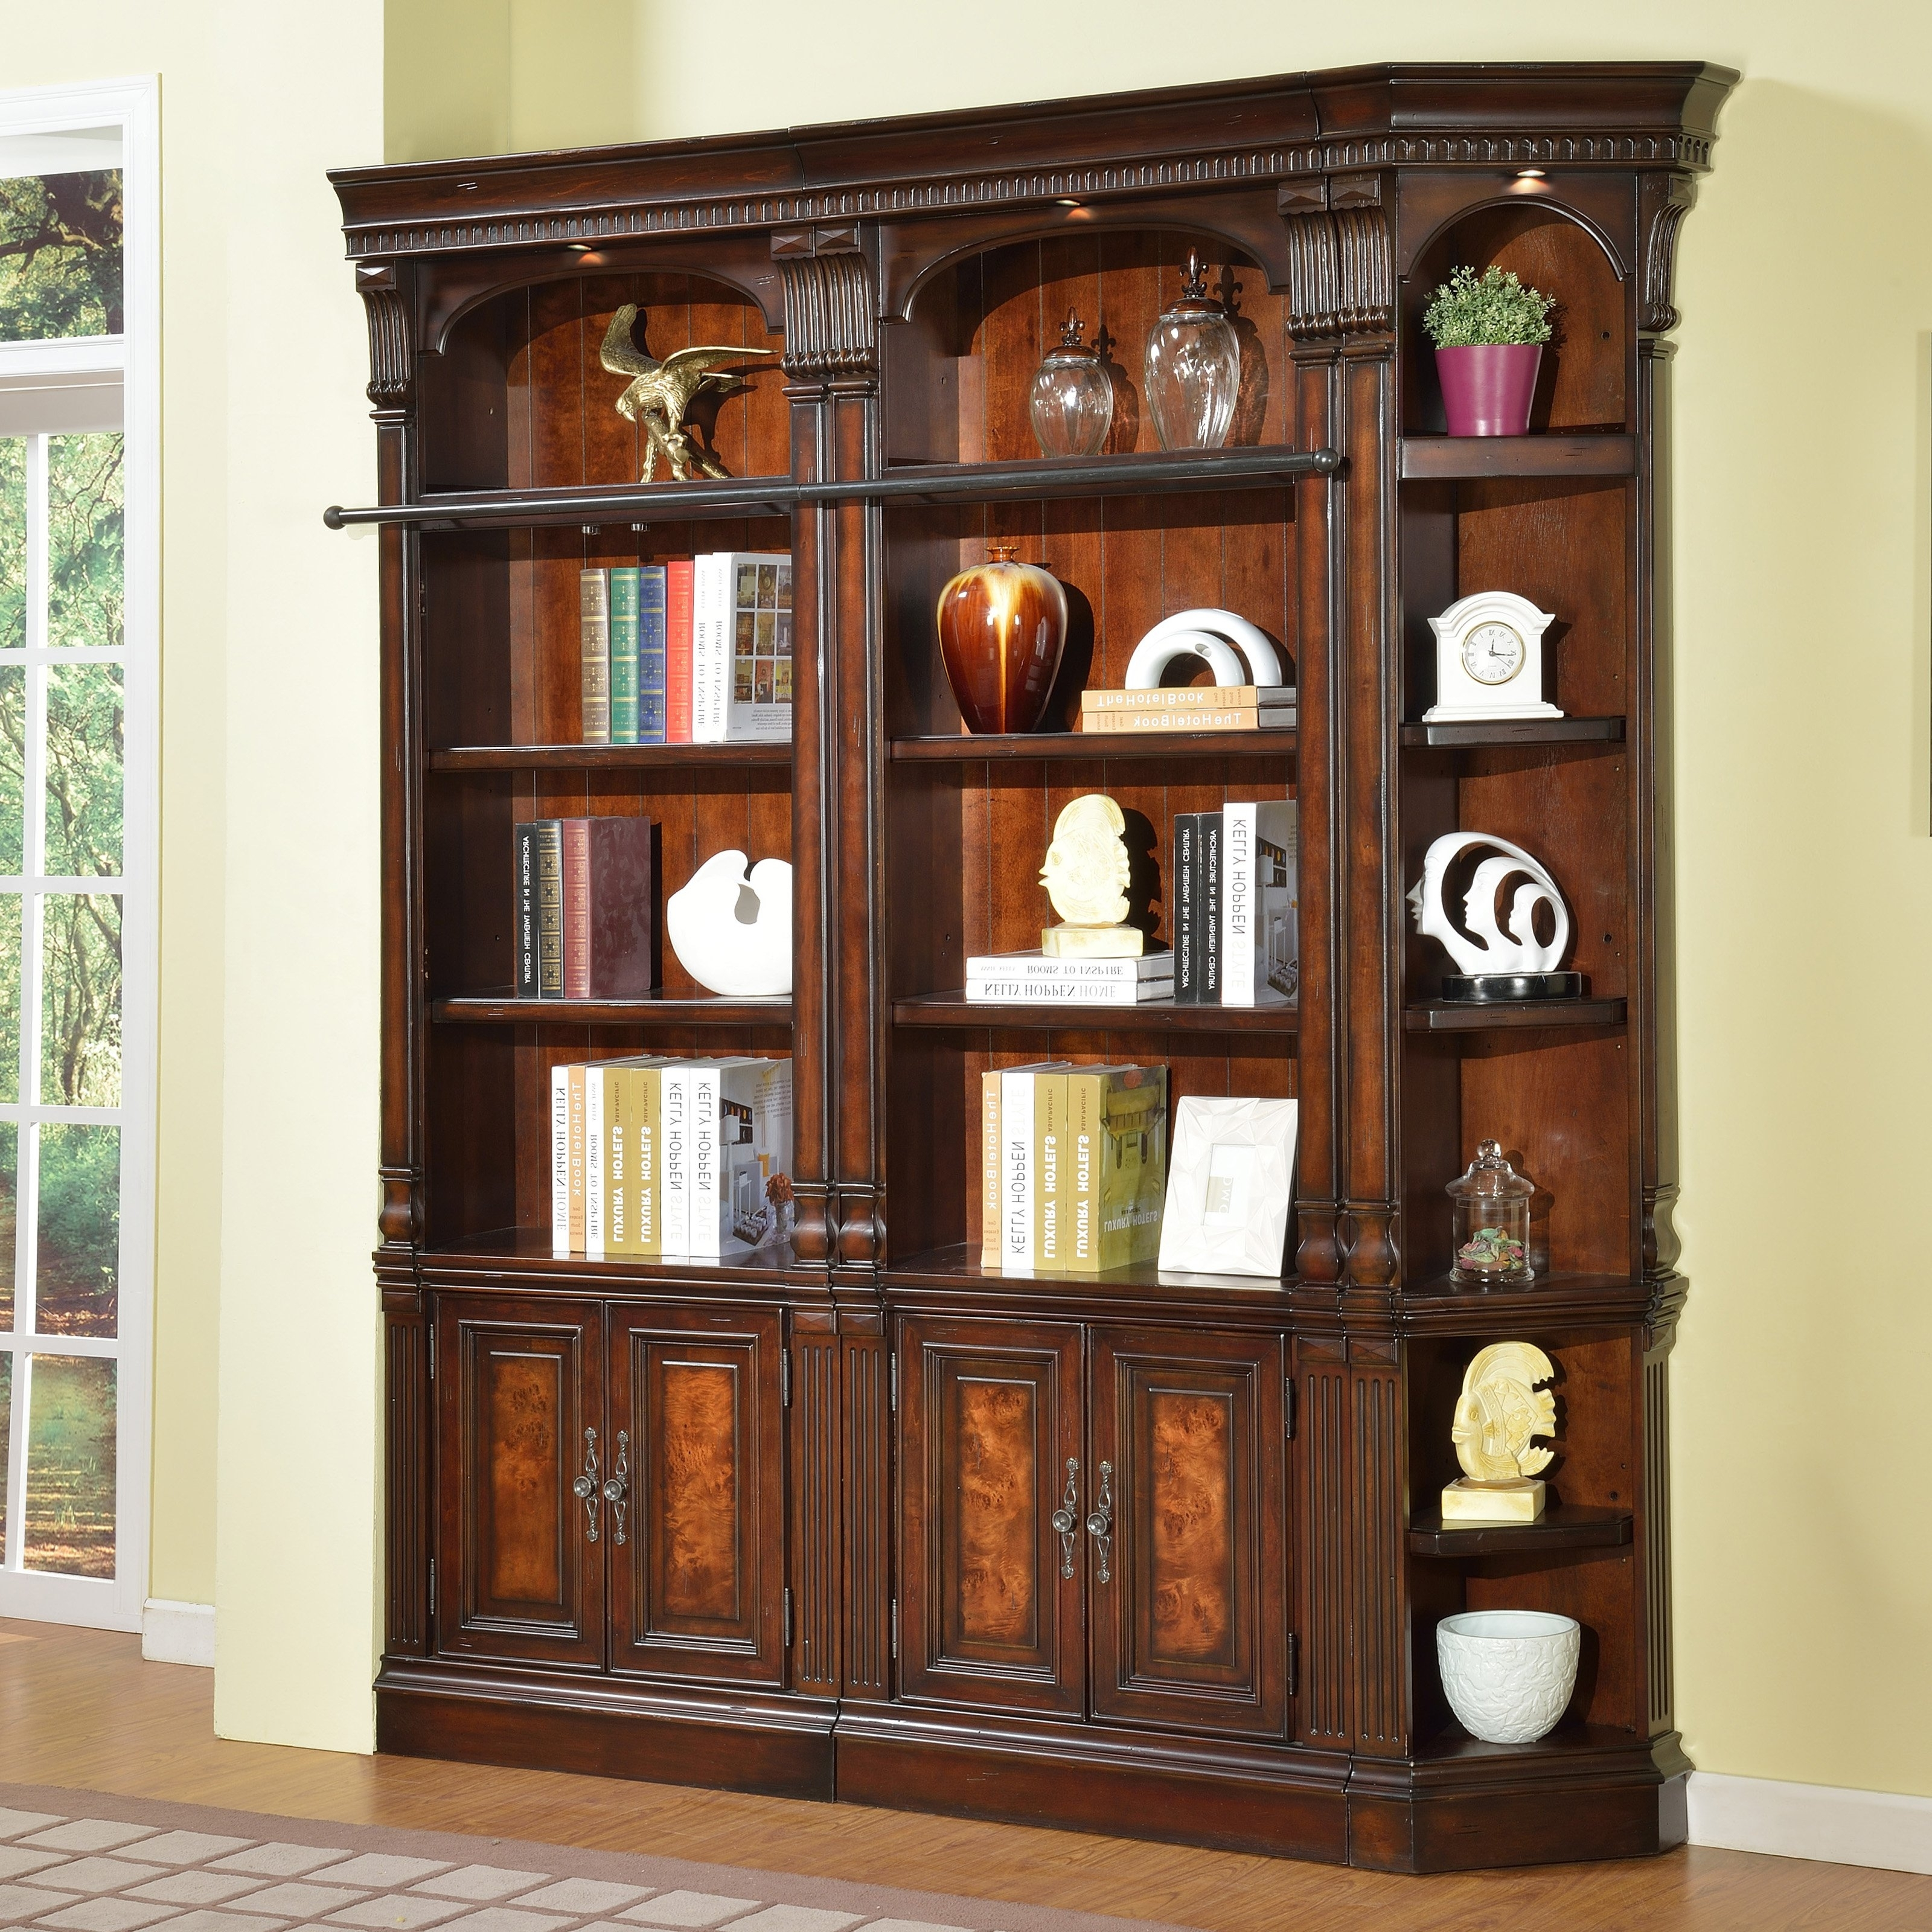 2018 Large Solid Wood Bookcases Pertaining To Bookshelf: Outstanding Dark Wood Bookcase Solid Wood Bookcases (View 1 of 15)